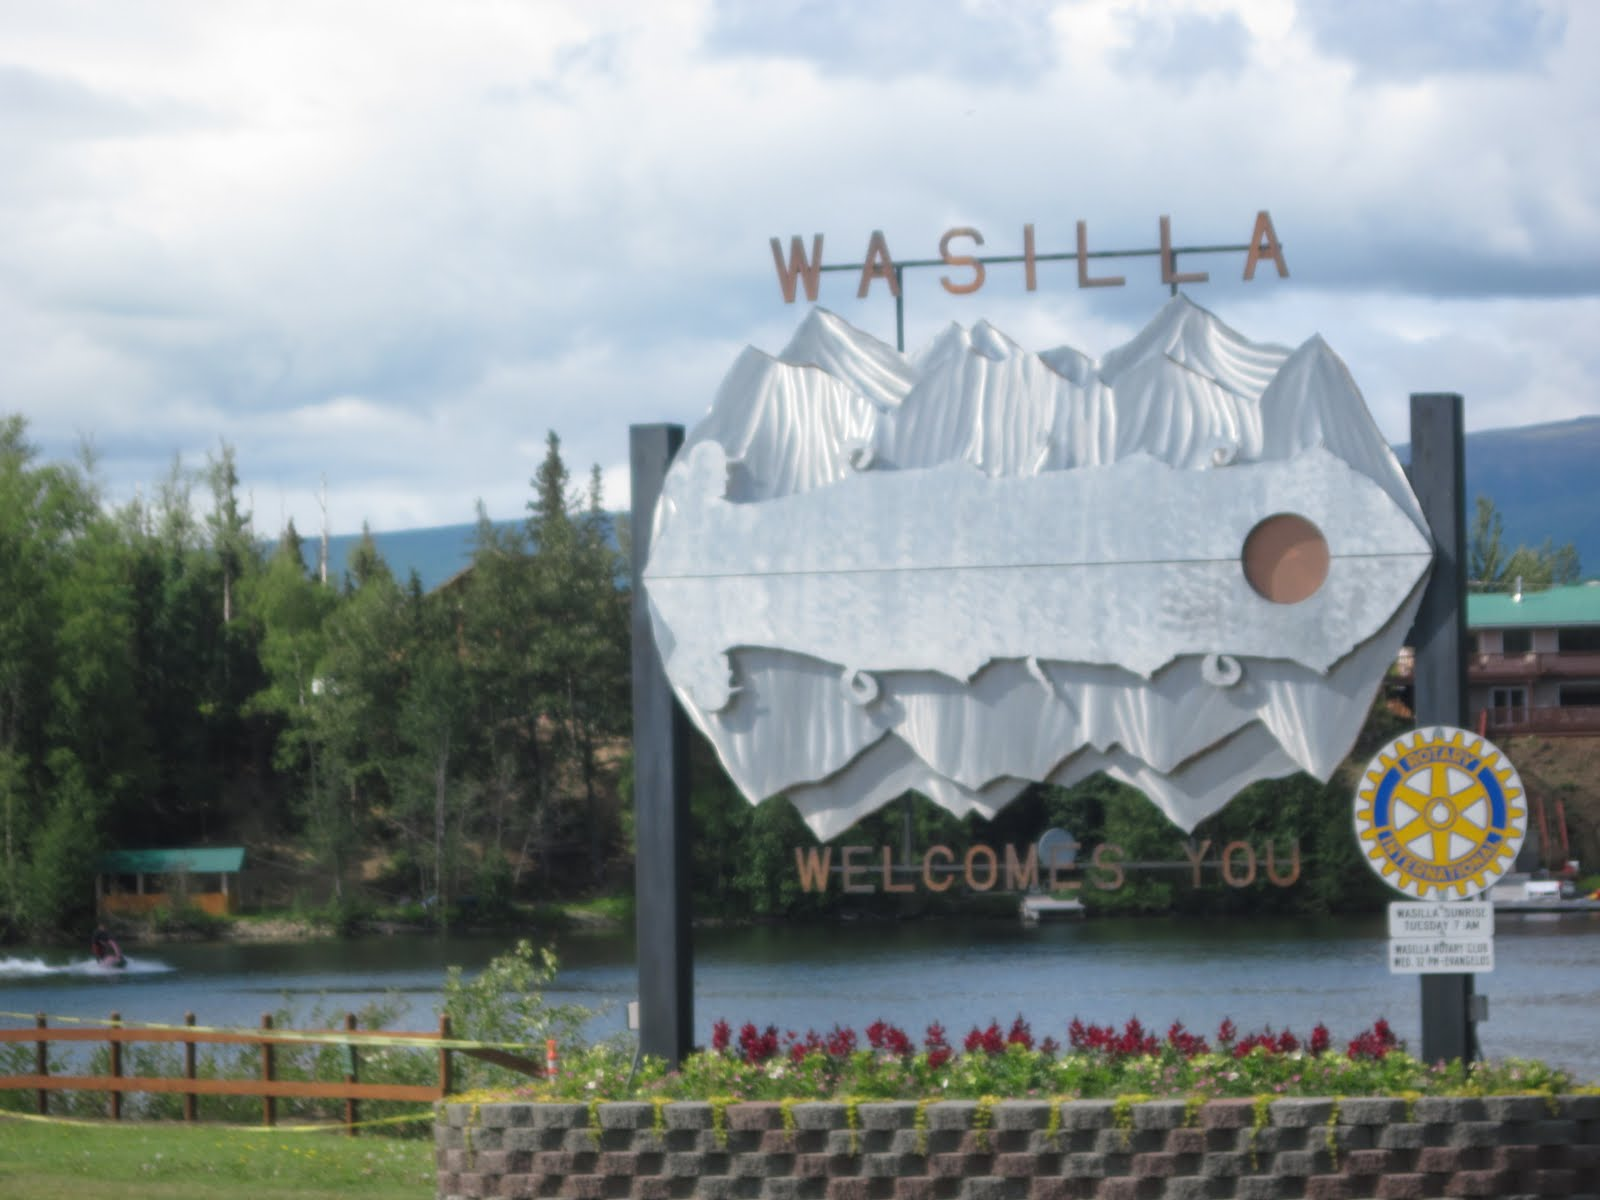 What to do in wasilla